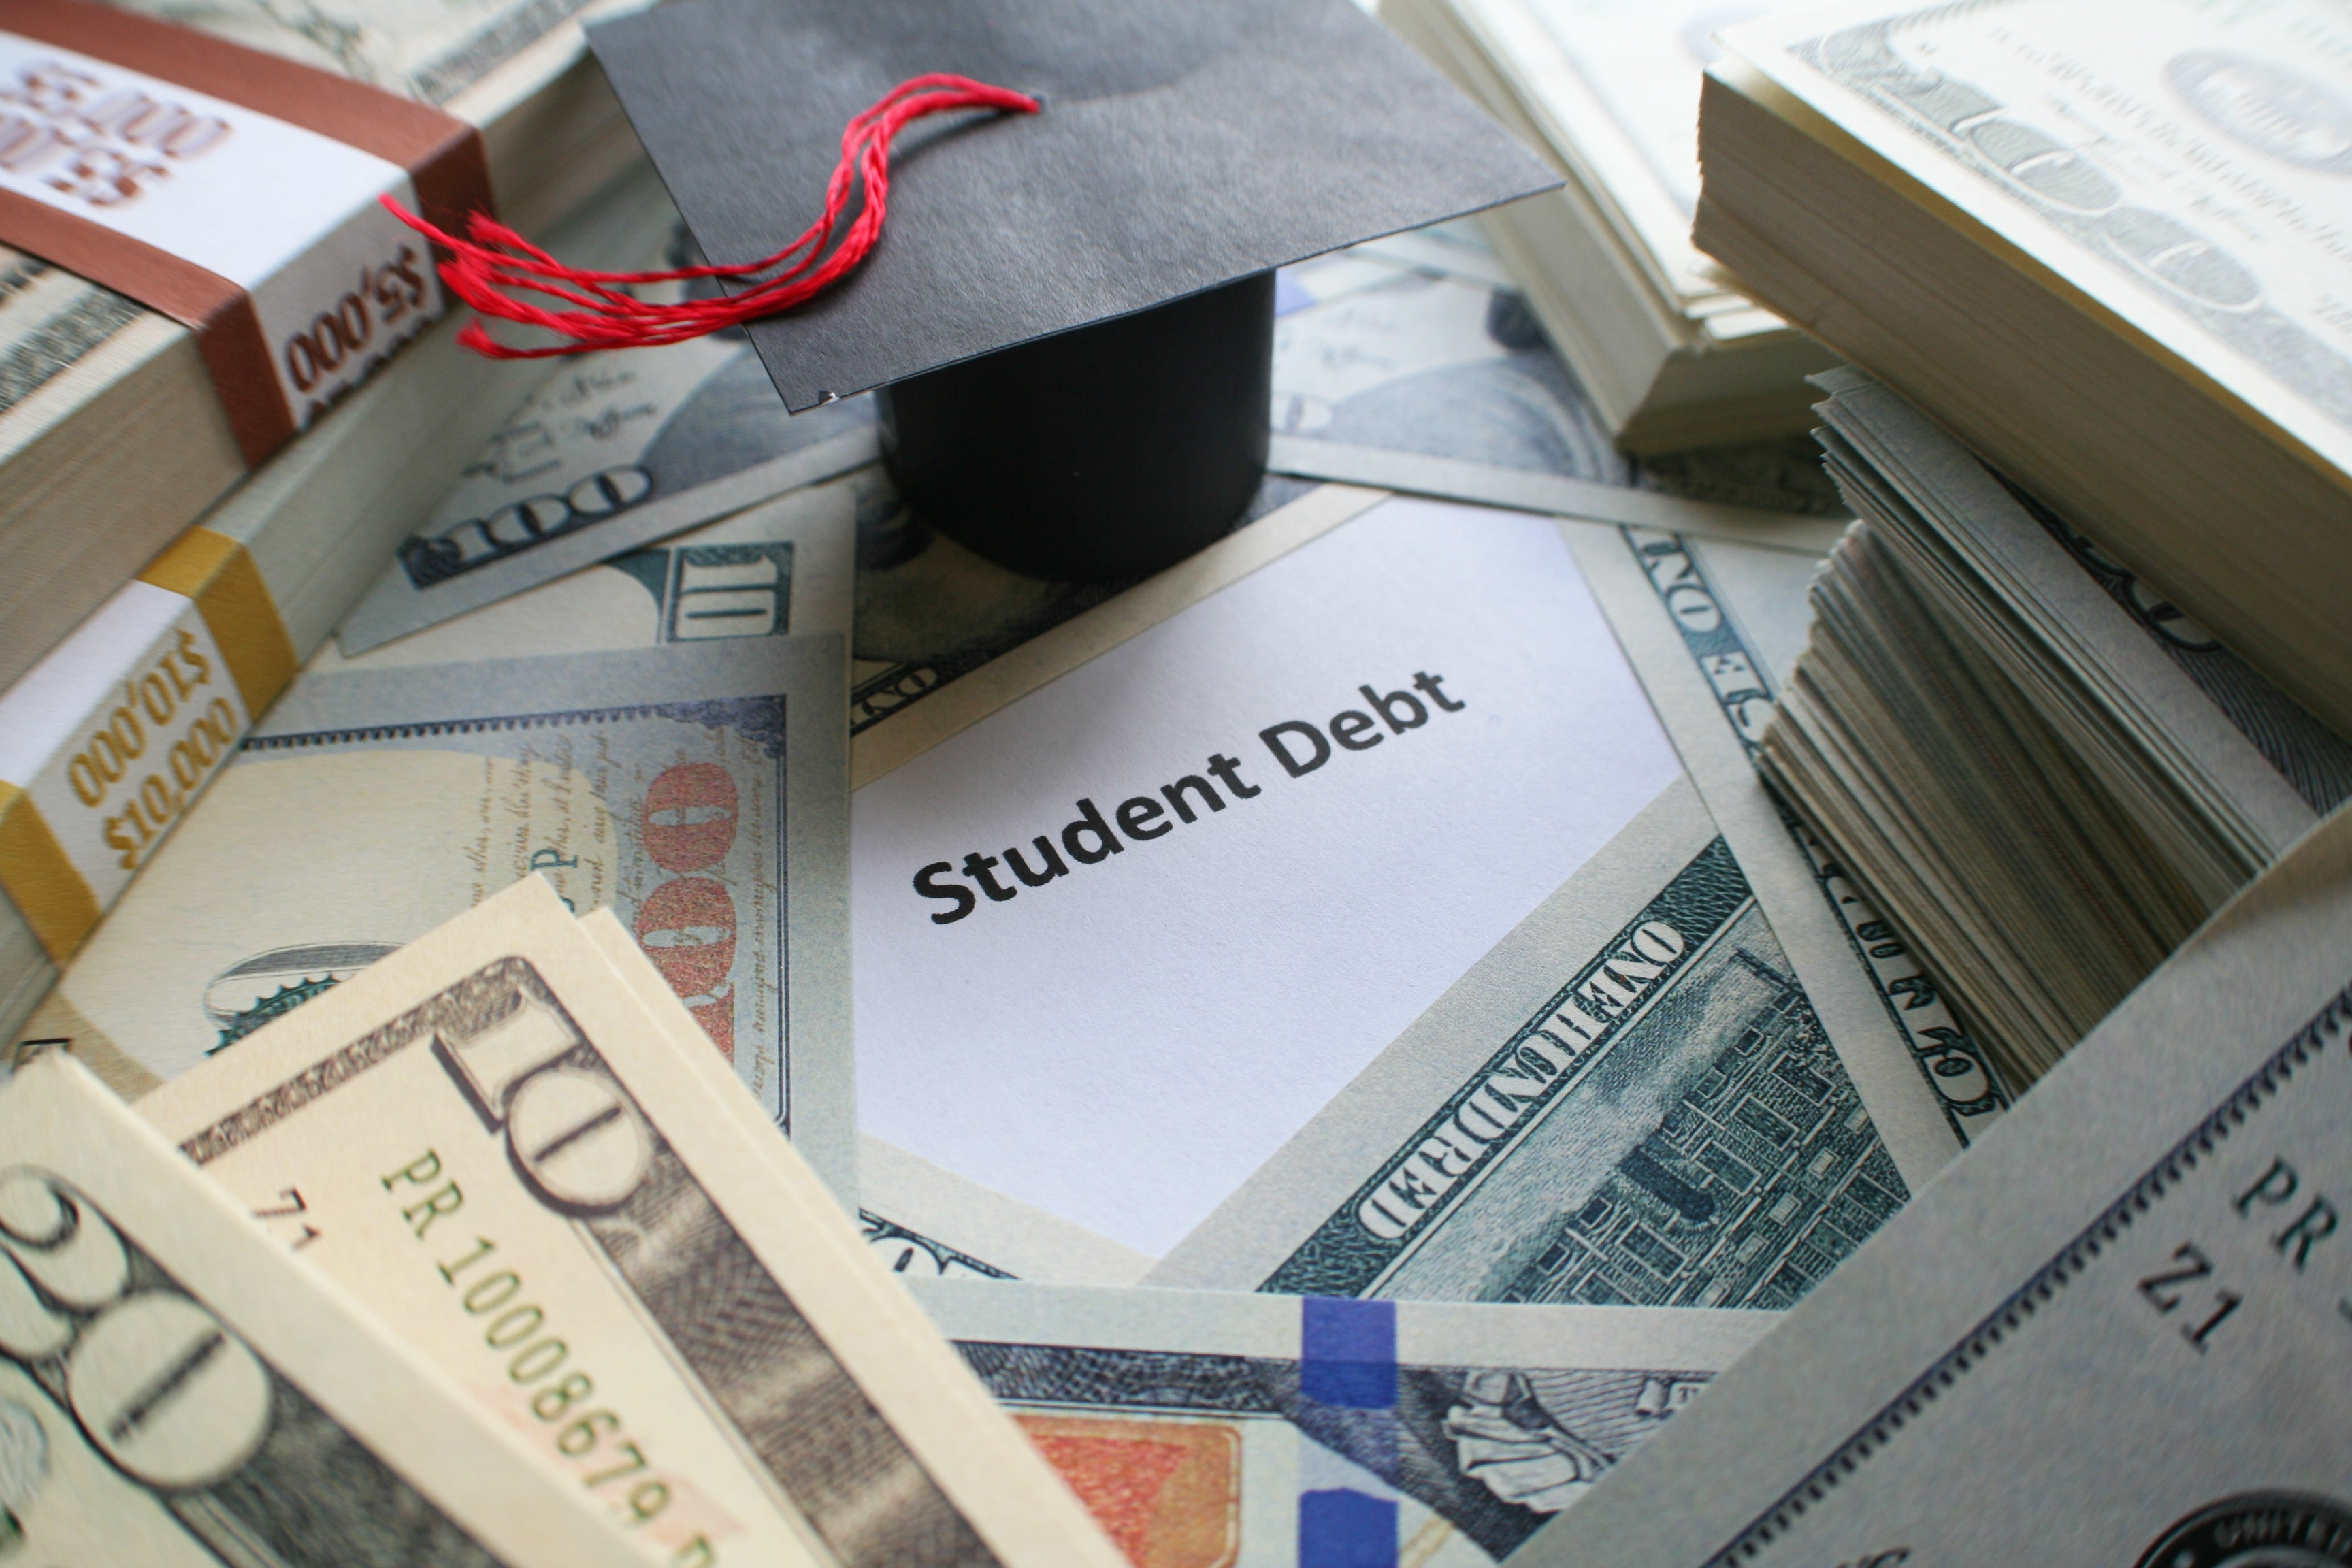 A piece of paper that says student debt surrounded by U,S. currency.